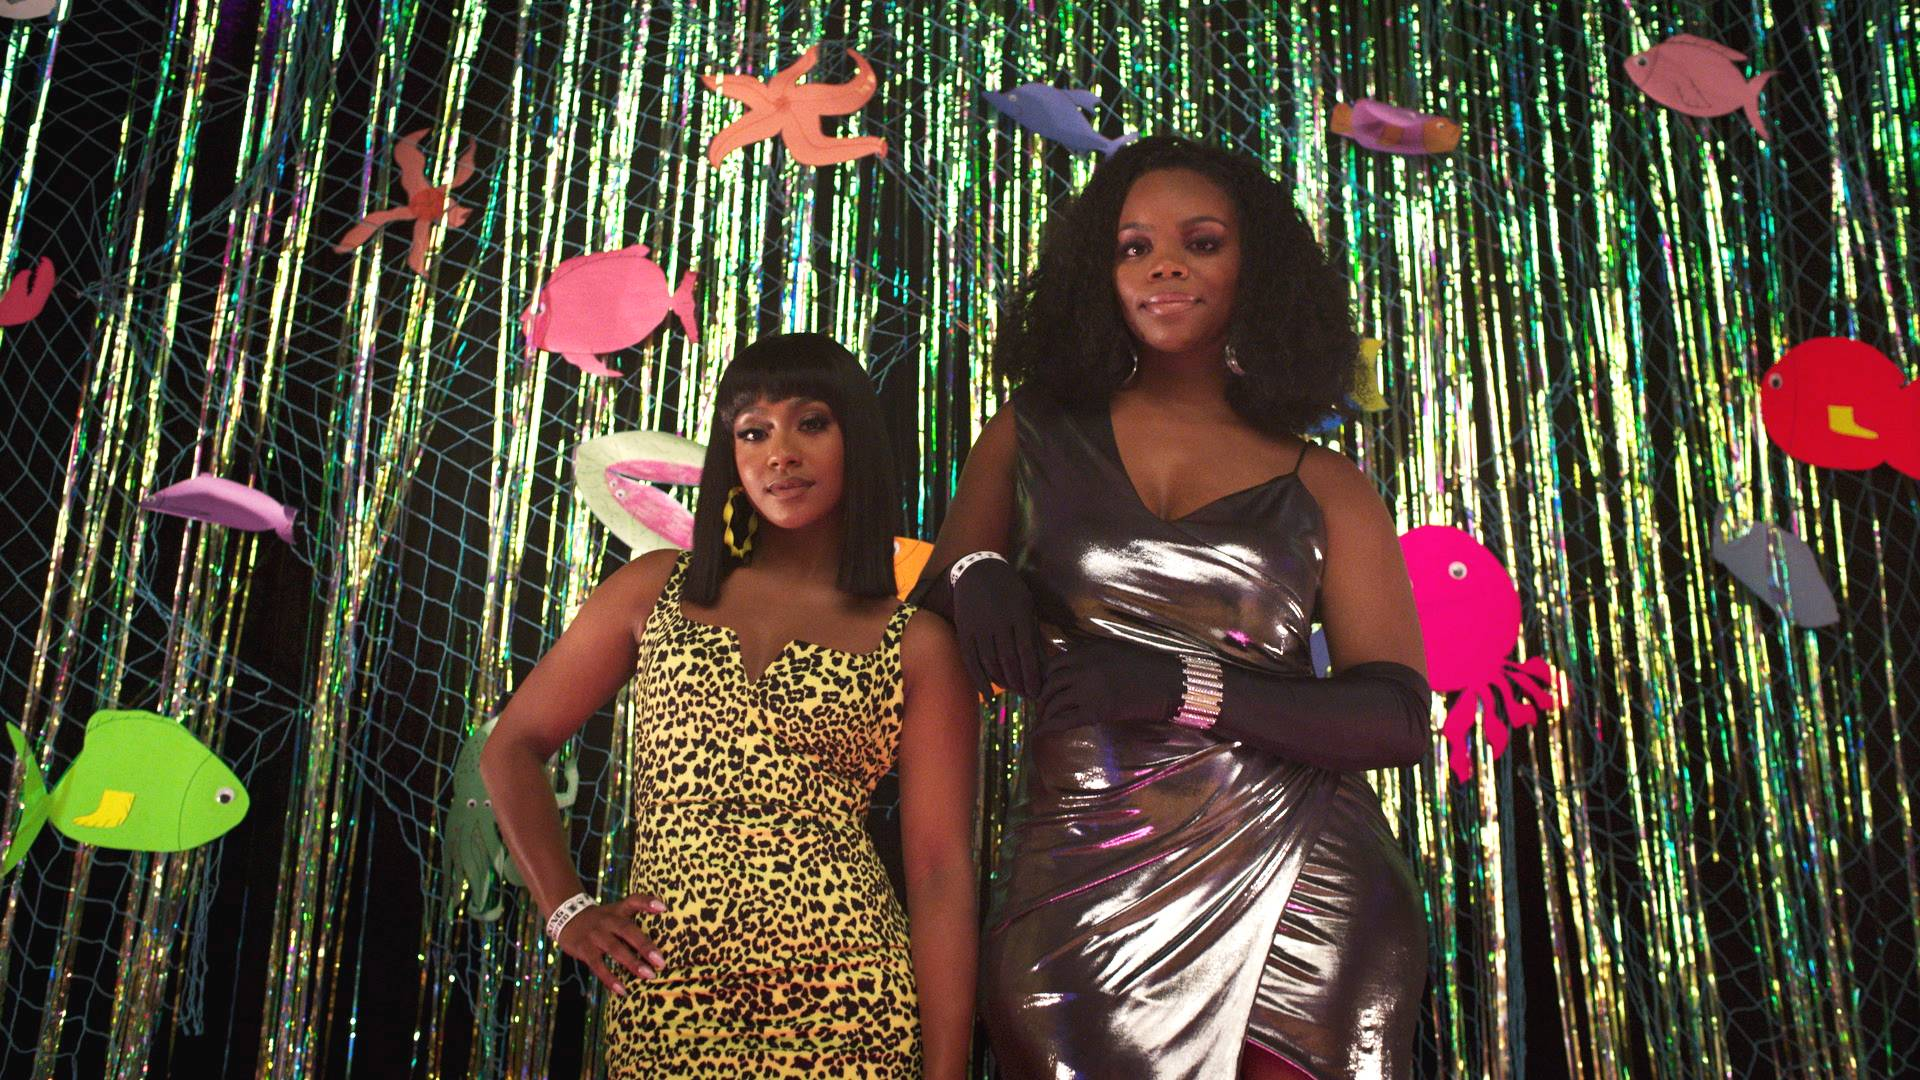 Tetona Jackson and Brittany Inge show off their outfits. - (Photo: BET)